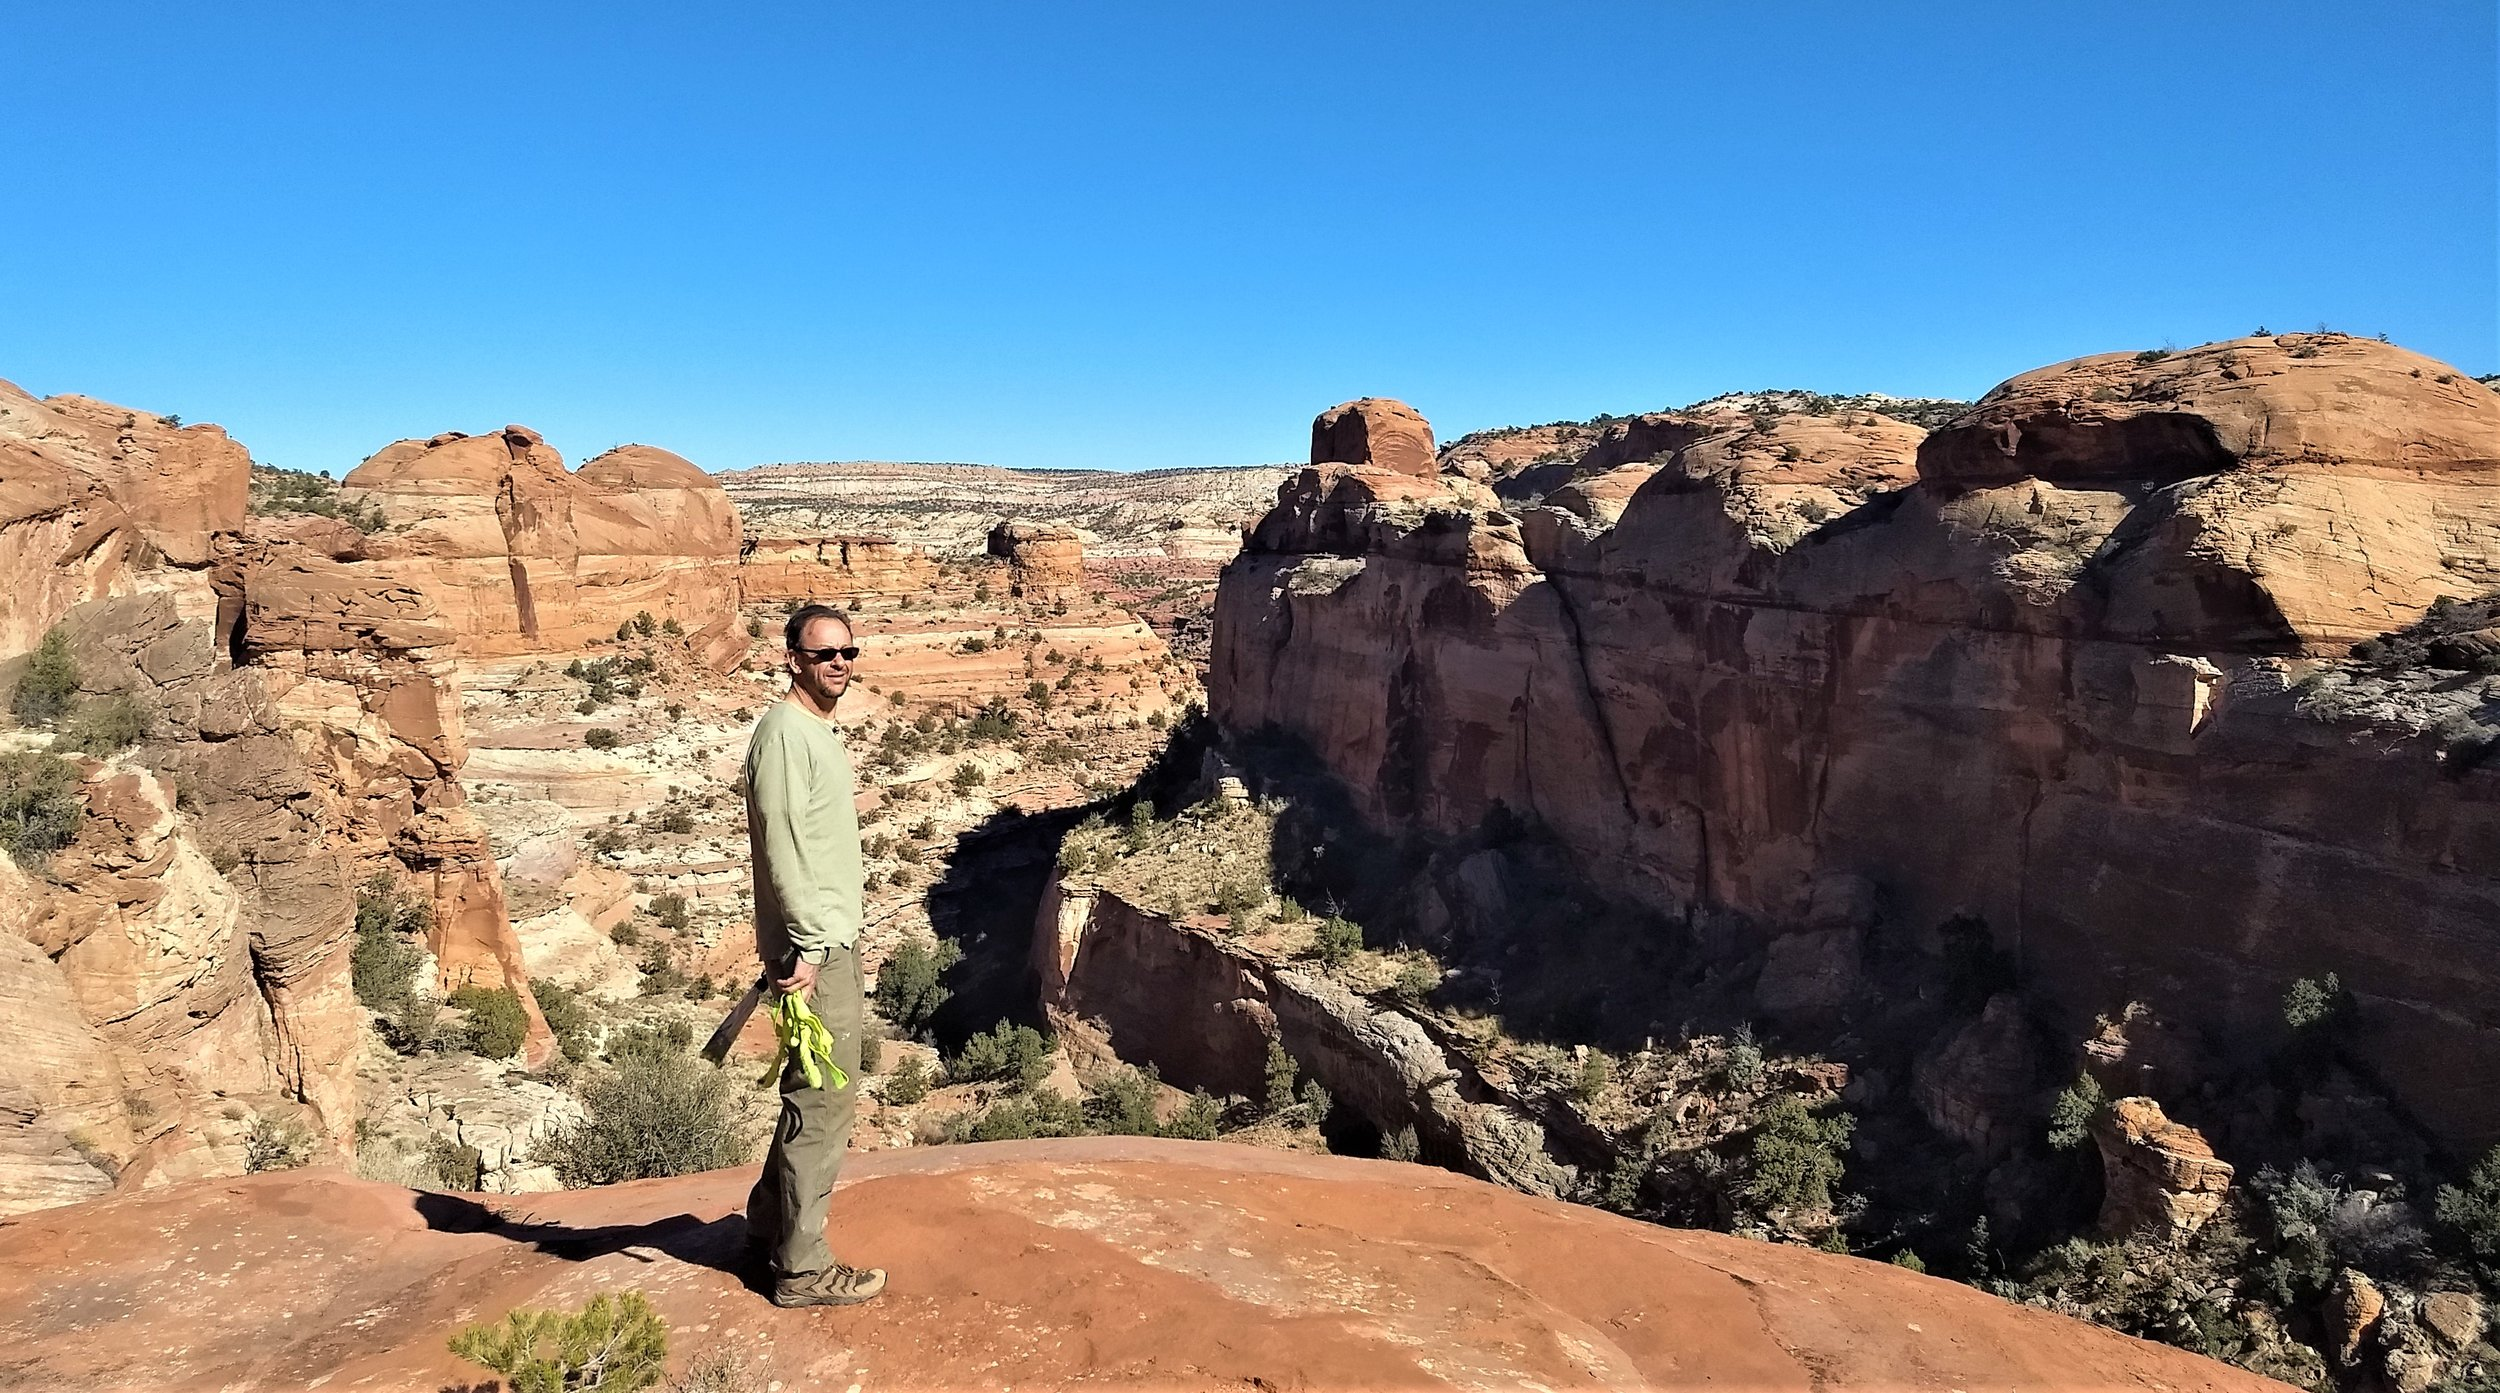 Colter shows us one of his favourite places on Earth. His passion for this landscape is infection, as is his laugh and lightness of spirit. See you next year at the Hot Springs!